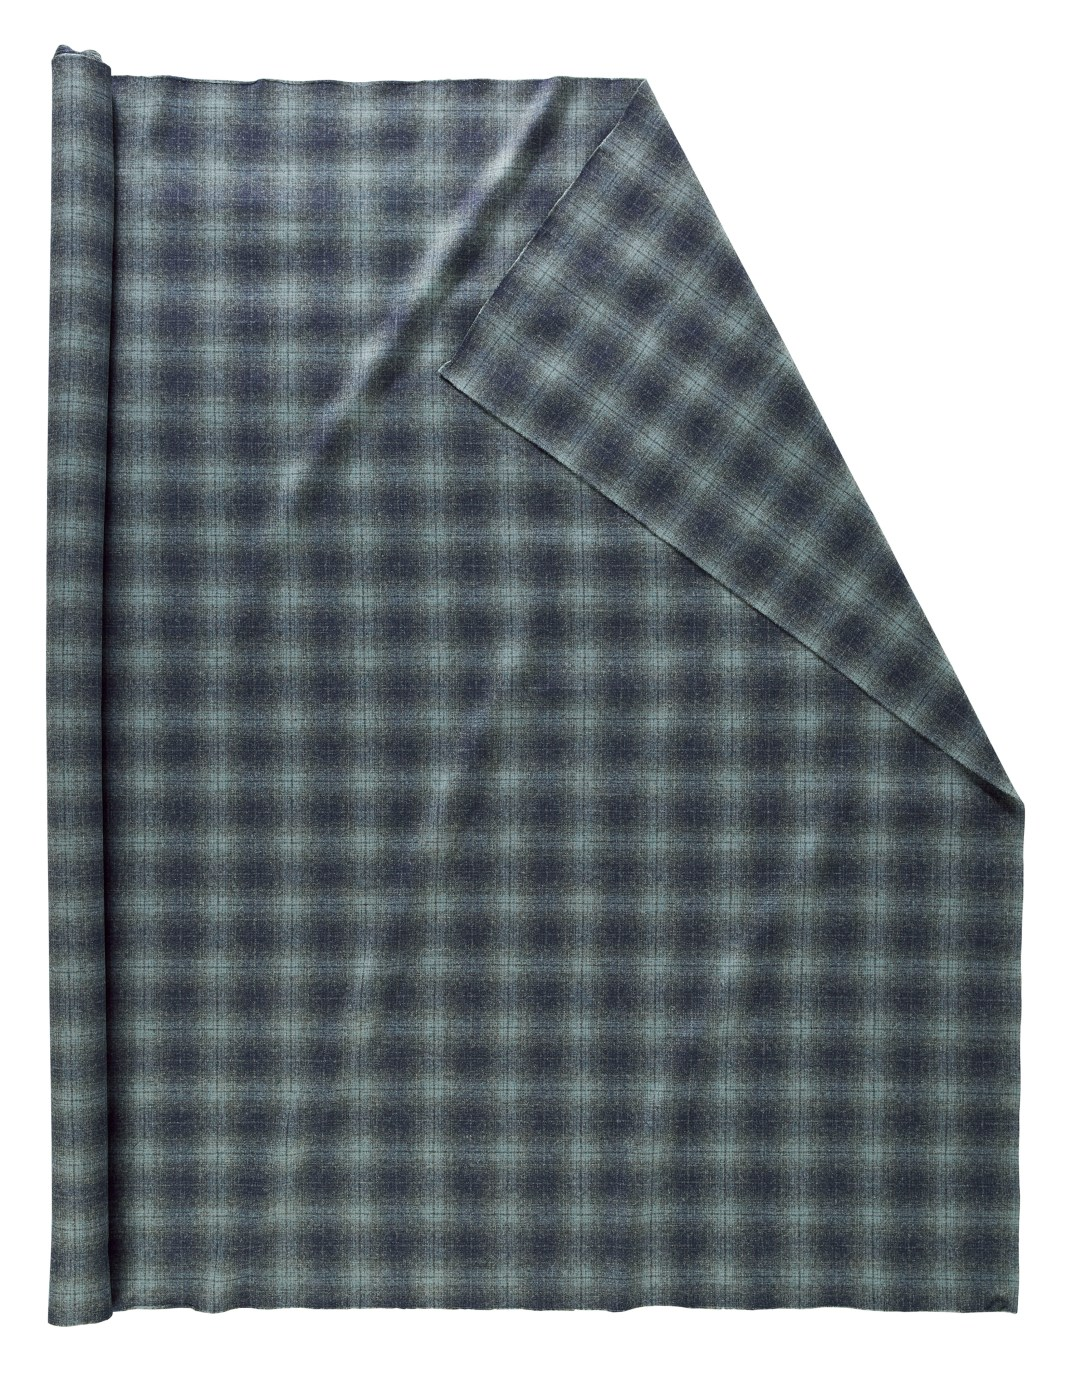 Roll of Pendleton wool fabric in a subtle plaid of light to dark greys.